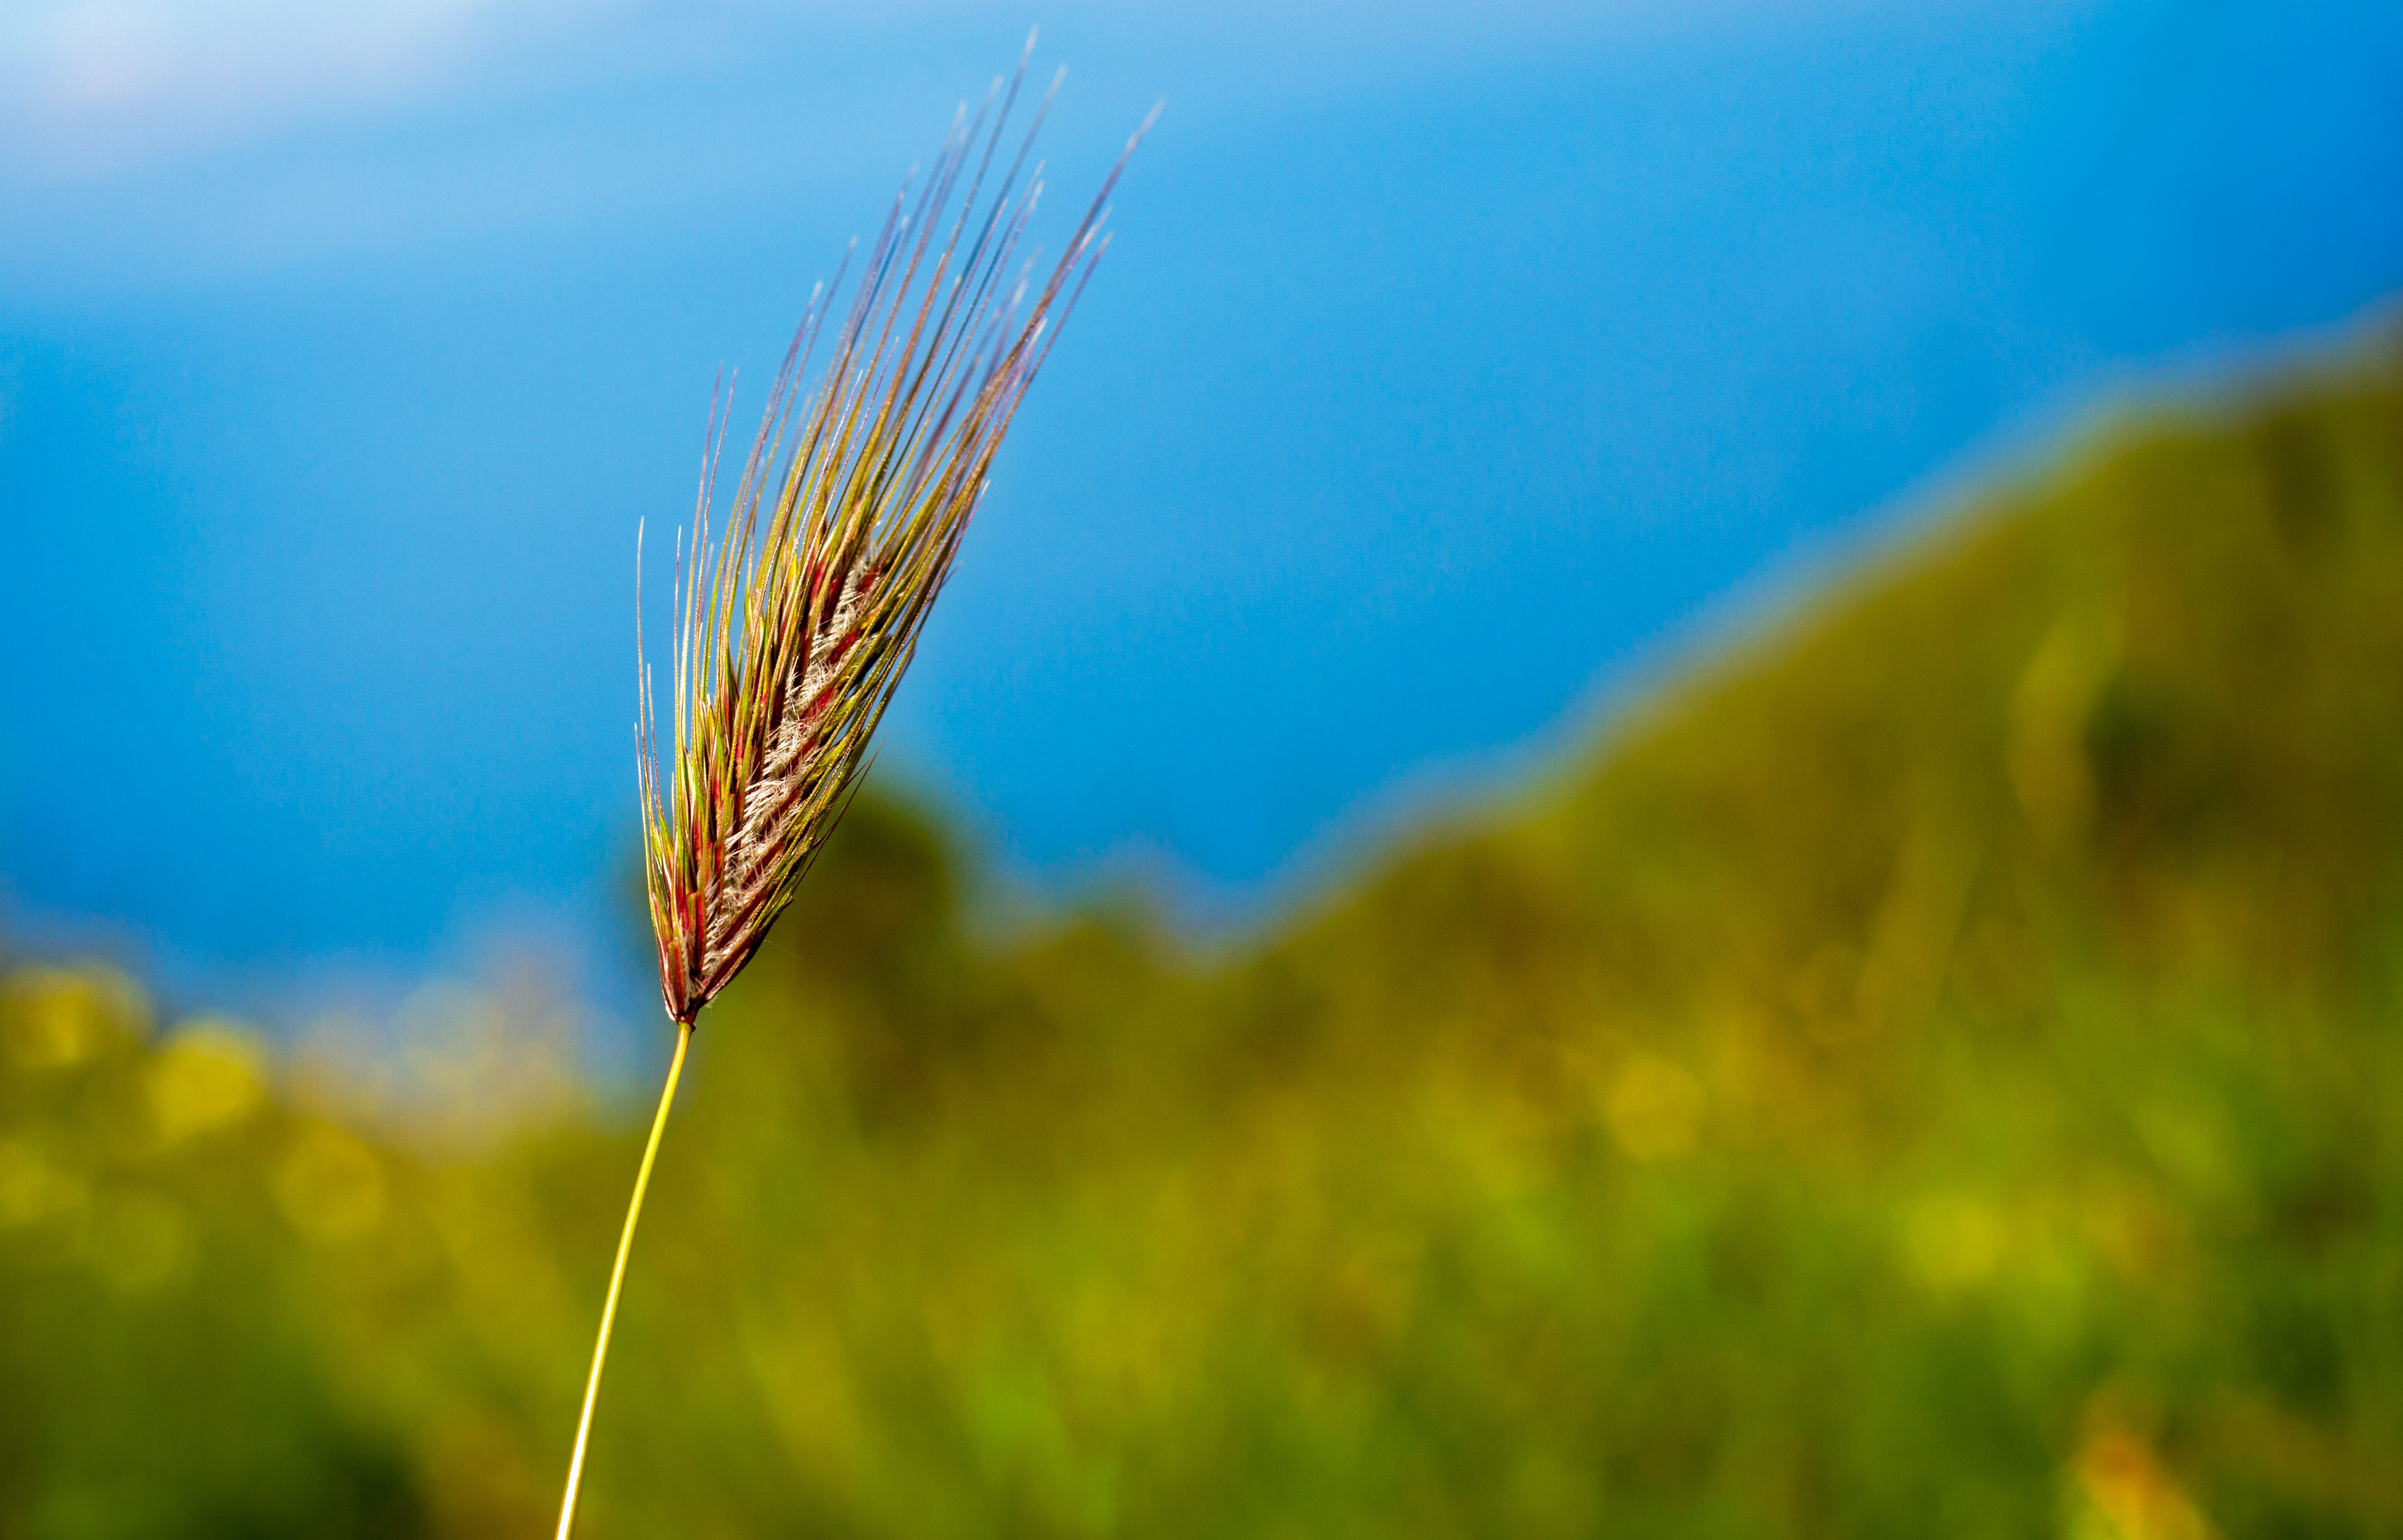 Close-up Photography of Brown Wheat